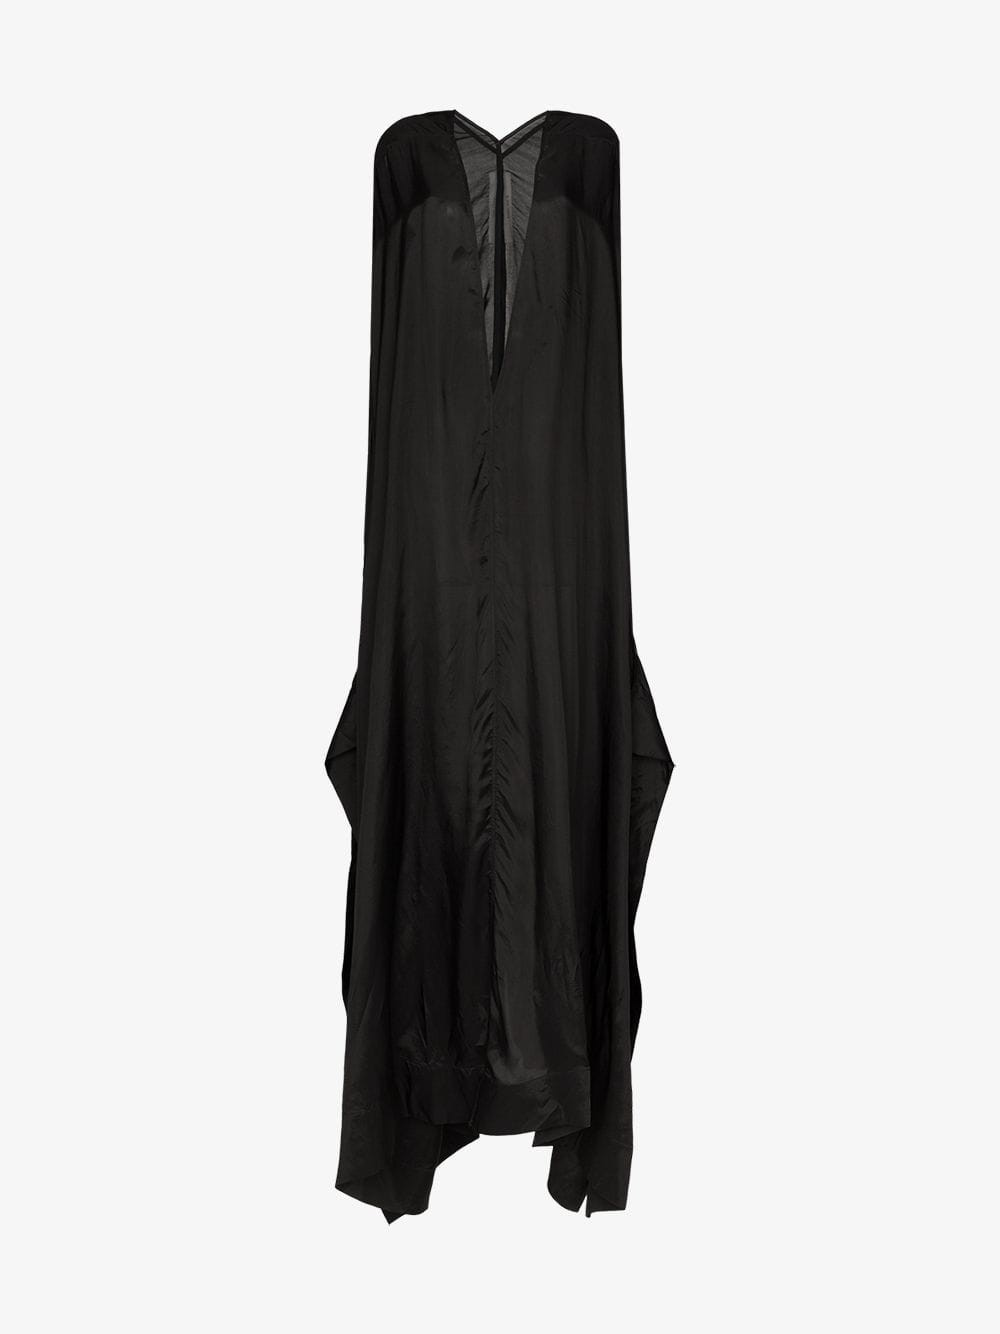 Rick Owens long-sleeved oversized maxi dress in black